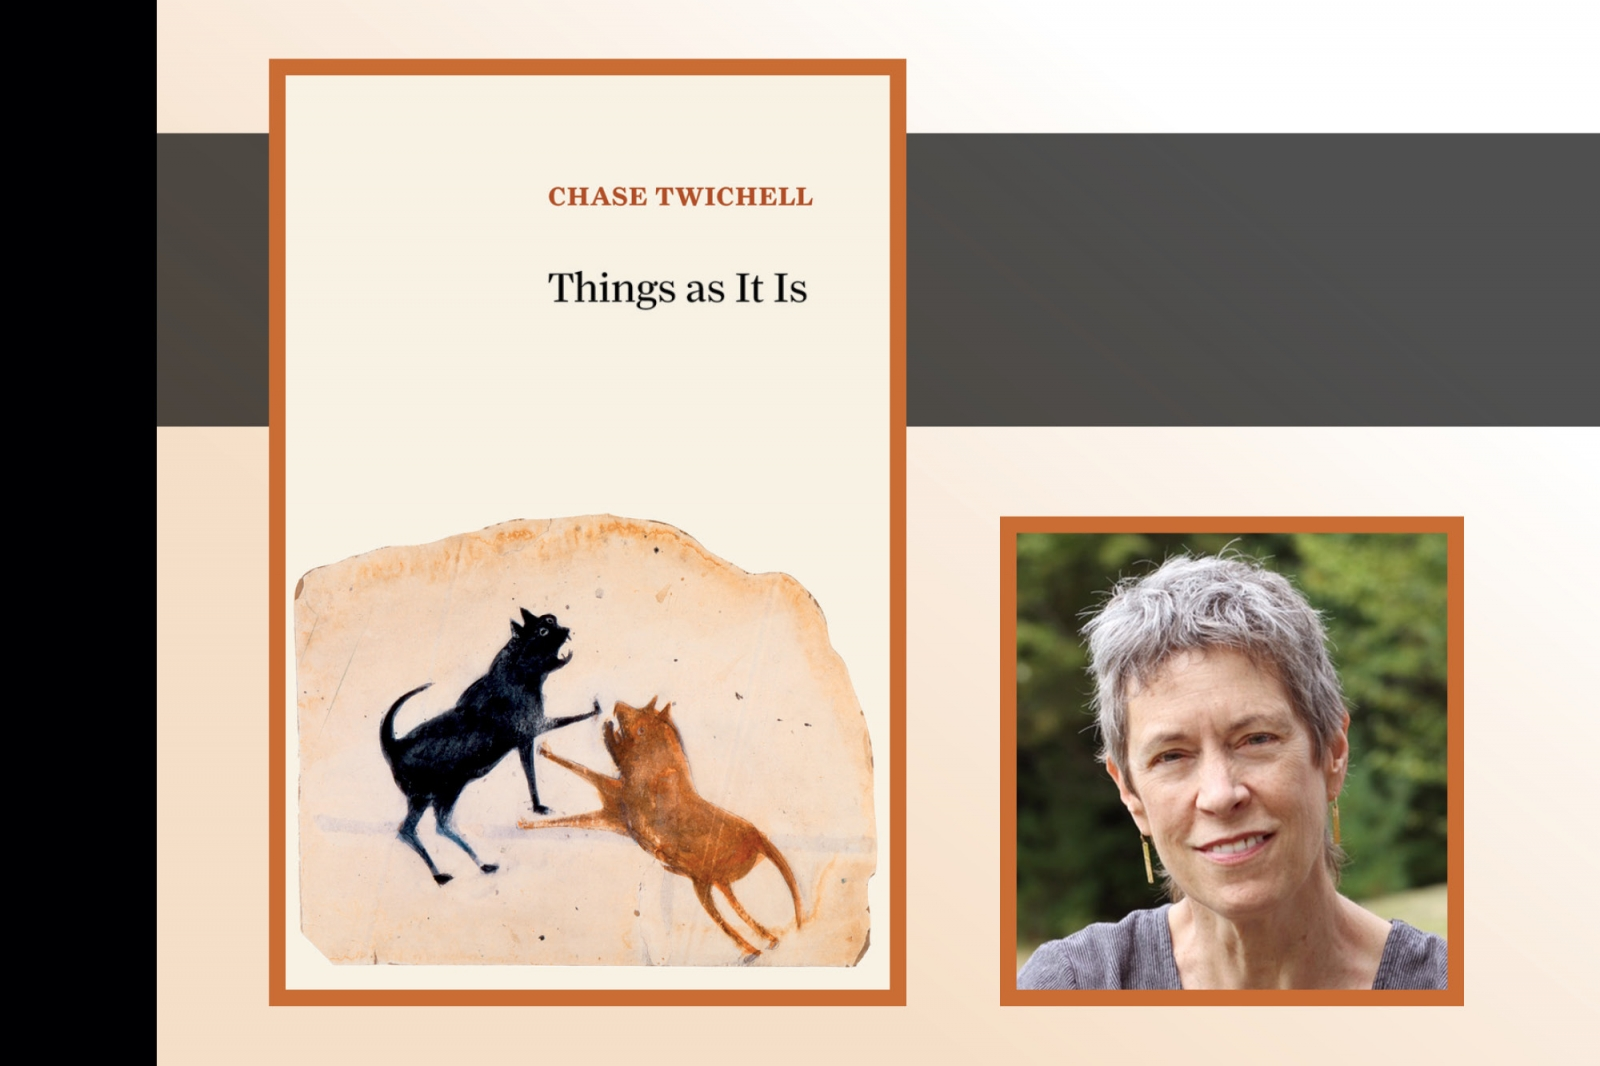 Poet Chase Twitchell juxtaposed with the cover to her book, Things As It Is